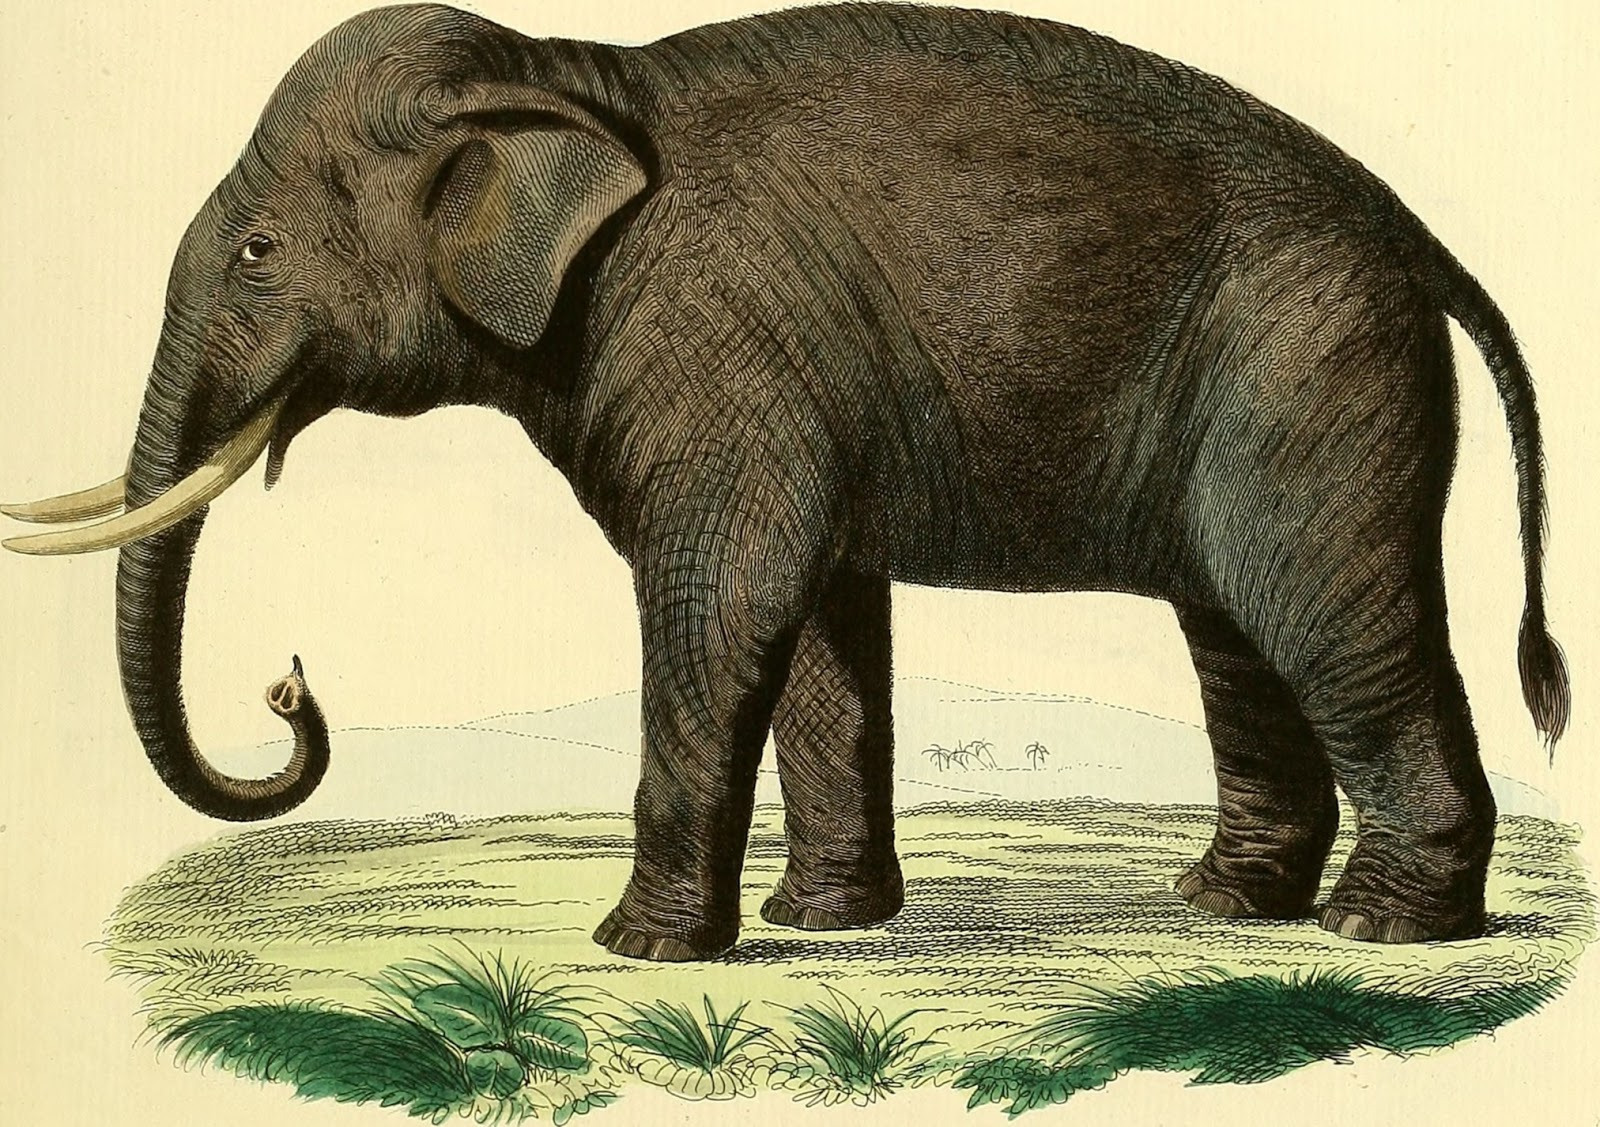 Data deluge how to fit an elephant 1953 how to fit an elephant 1953 biocorpaavc Image collections